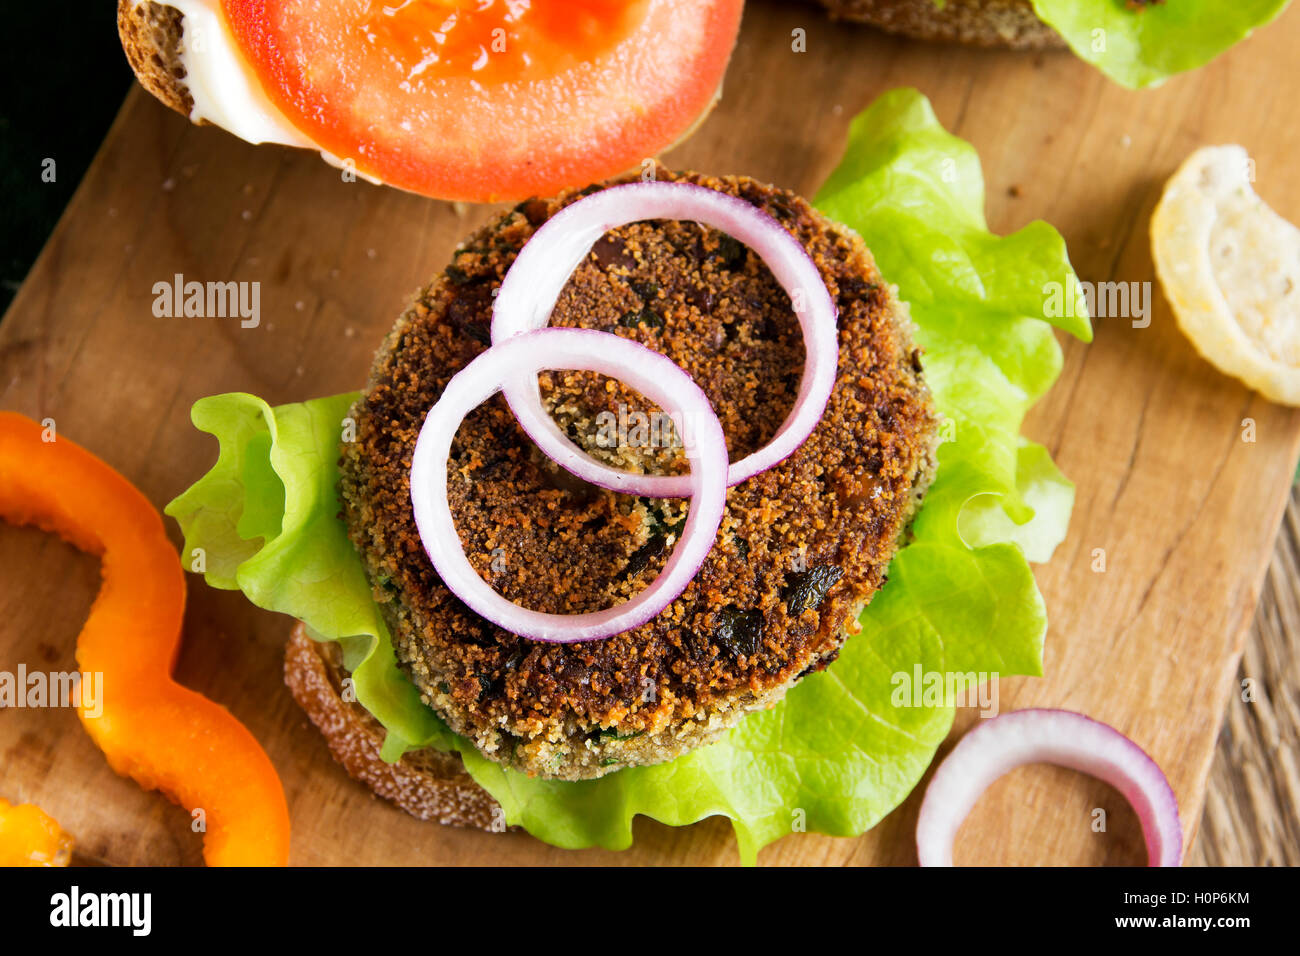 Vegetarian lentil burger with vegetables on wooden cutting board - healthy tasty vegetarian snack (food, lunch) - Stock Image